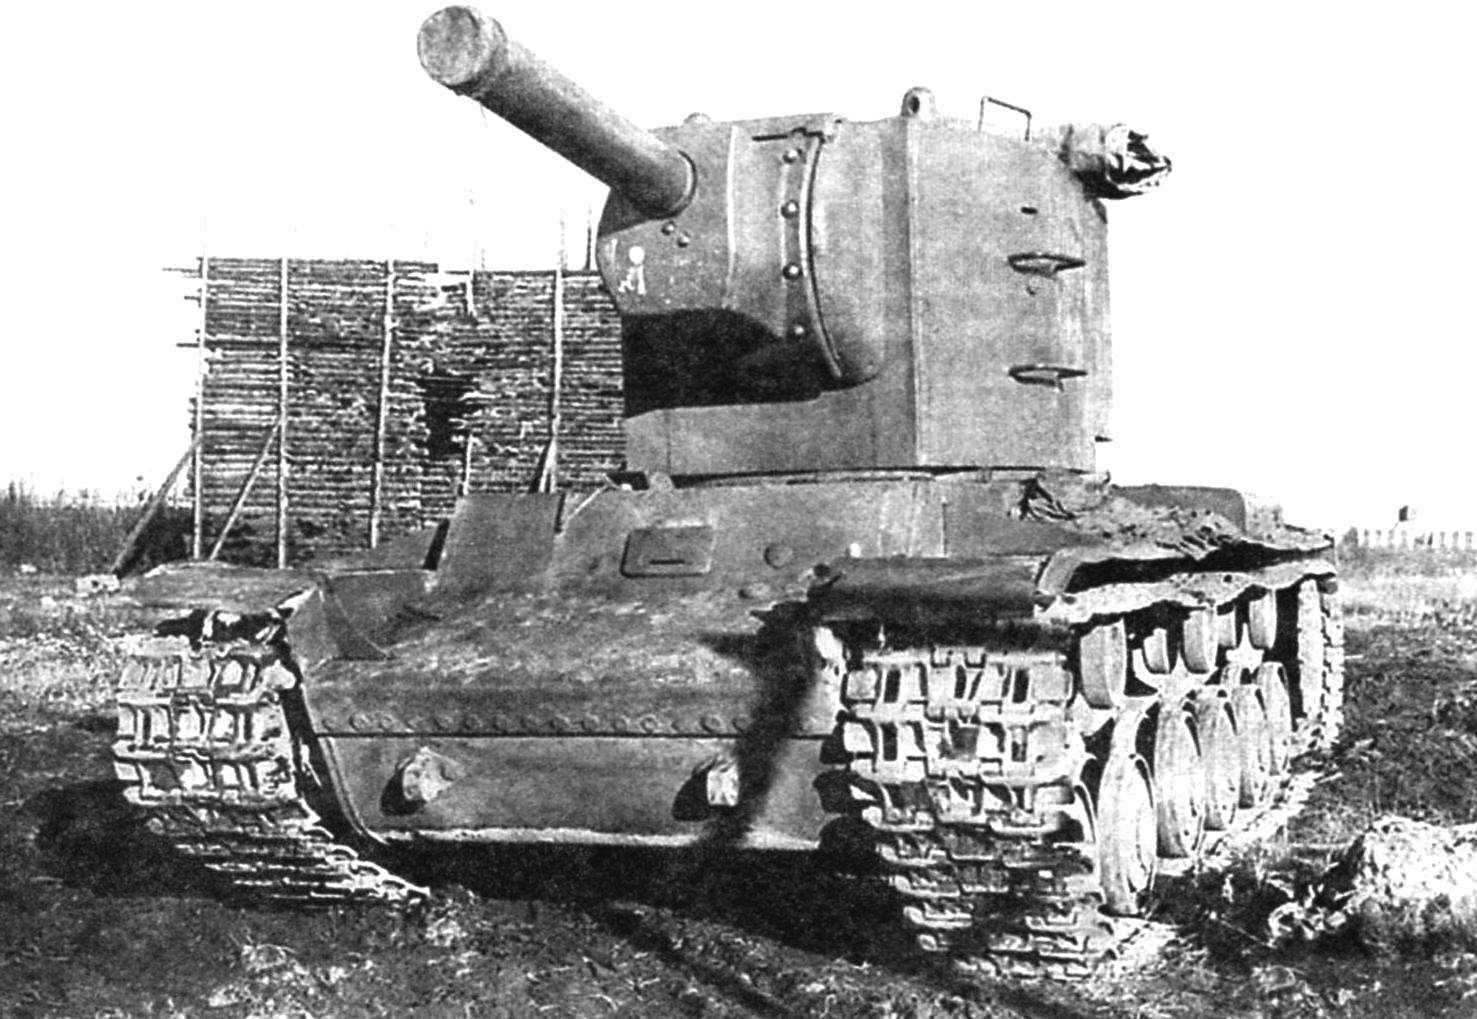 One of the first samples of the tank before testing. 1940.